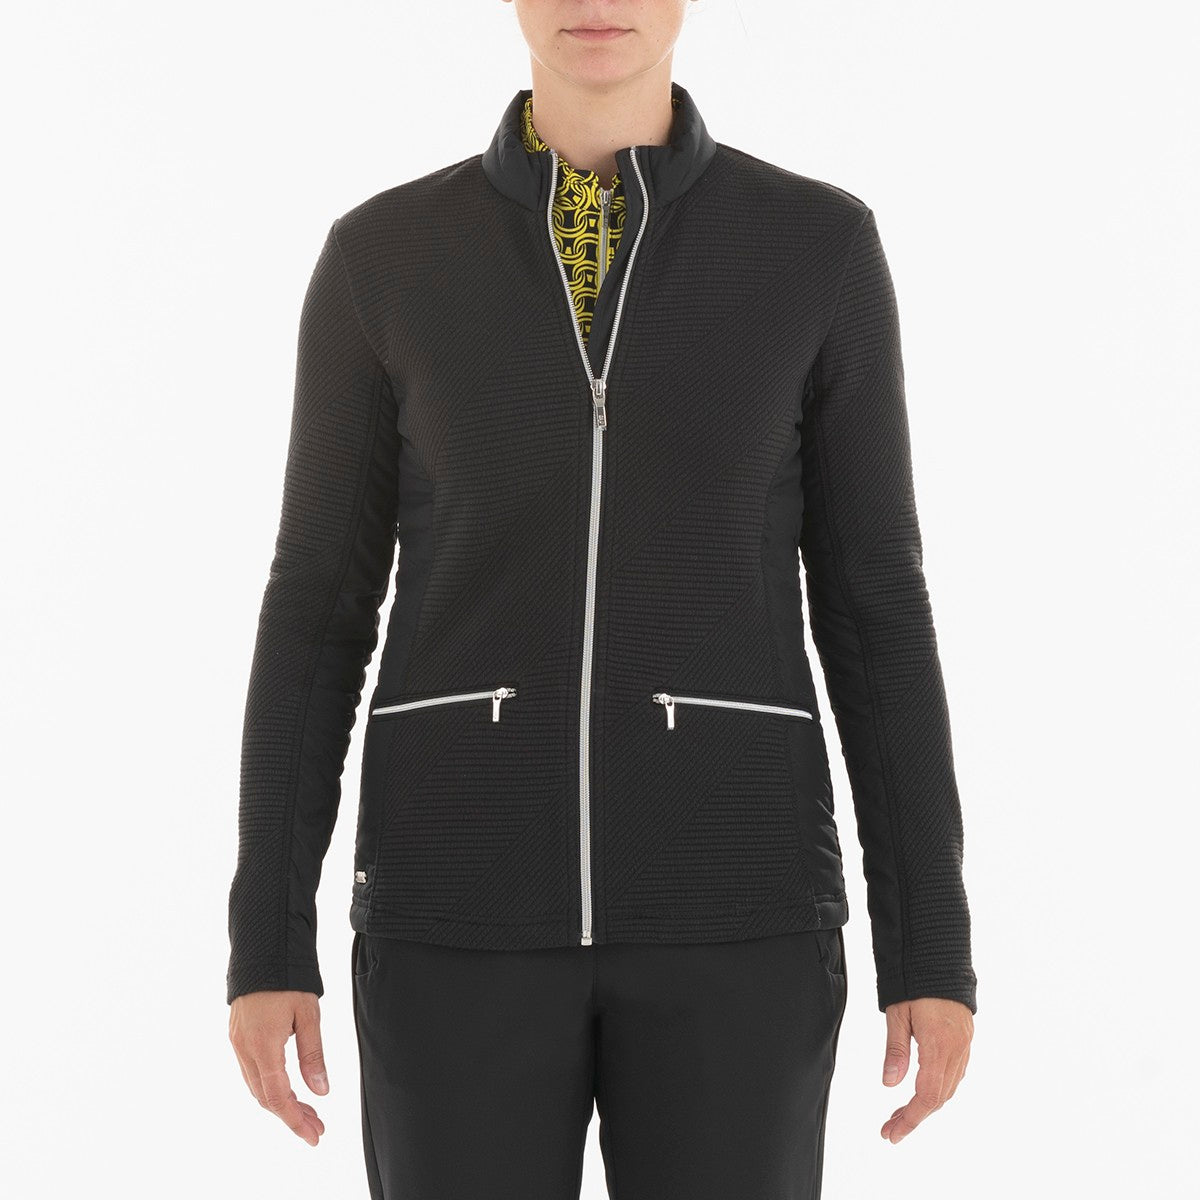 KERRIGAN JACKET GOLF 001 BLACK XXL ESSENTIALS